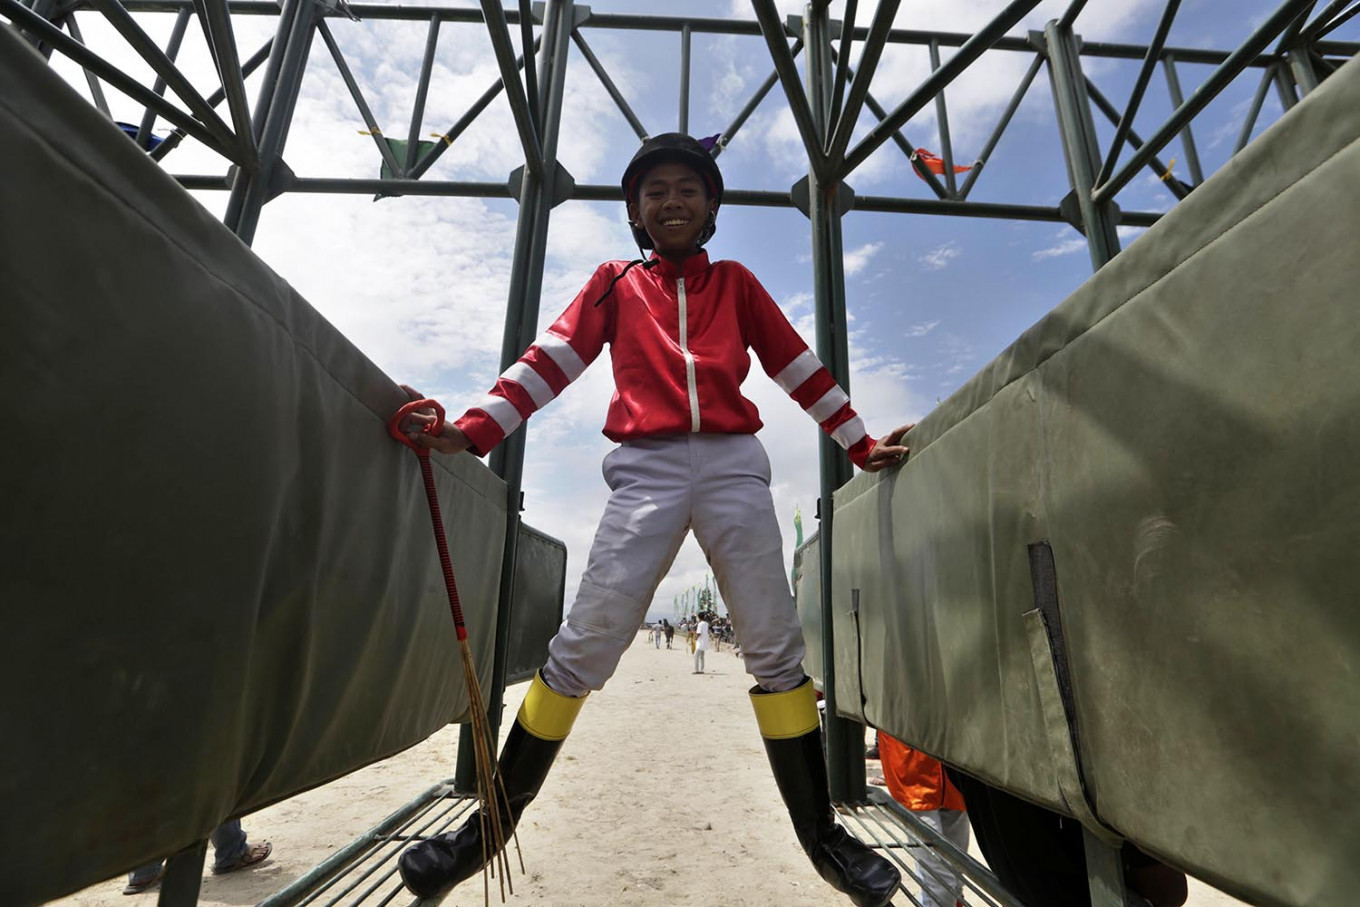 On his mark: Ari, a small jockey, is preparing to ride his horse. This 14-year-old jockey, who started his career last year, is respected by his opponents. JP/Hotli Simanjuntak